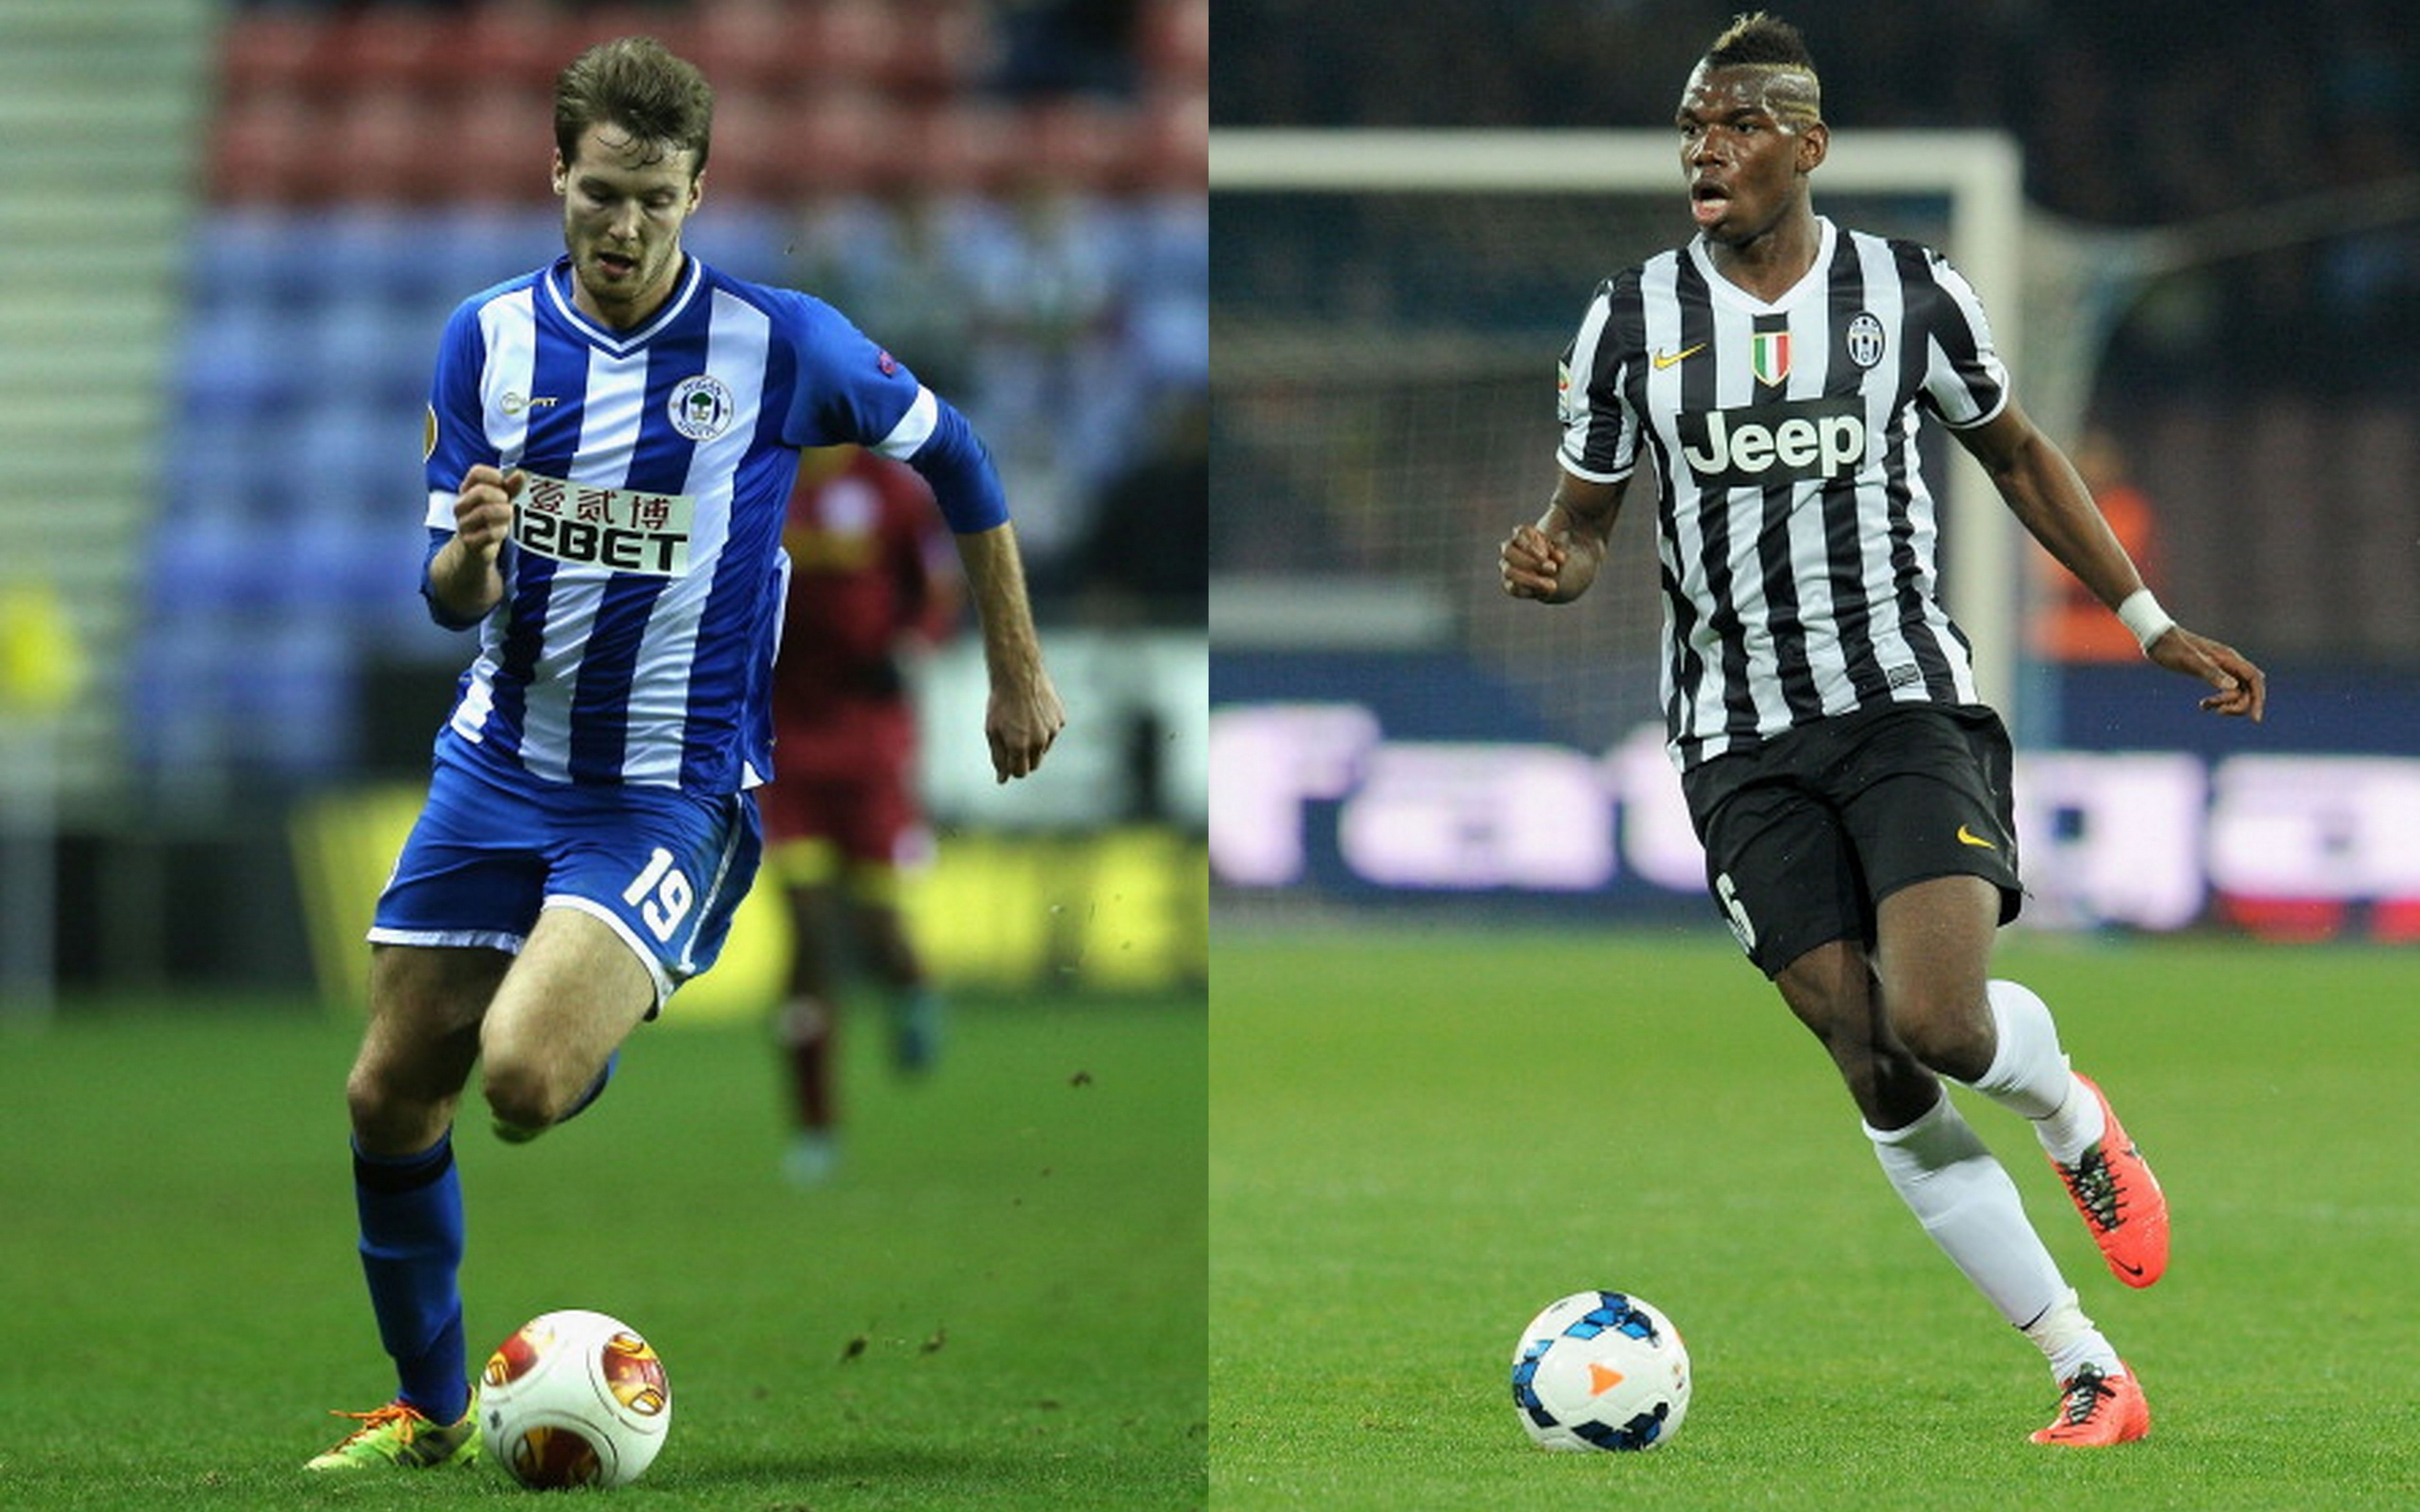 Divergent careers of the two possible heirs to Paul Scholes - Nick Powell and Paul Pogba